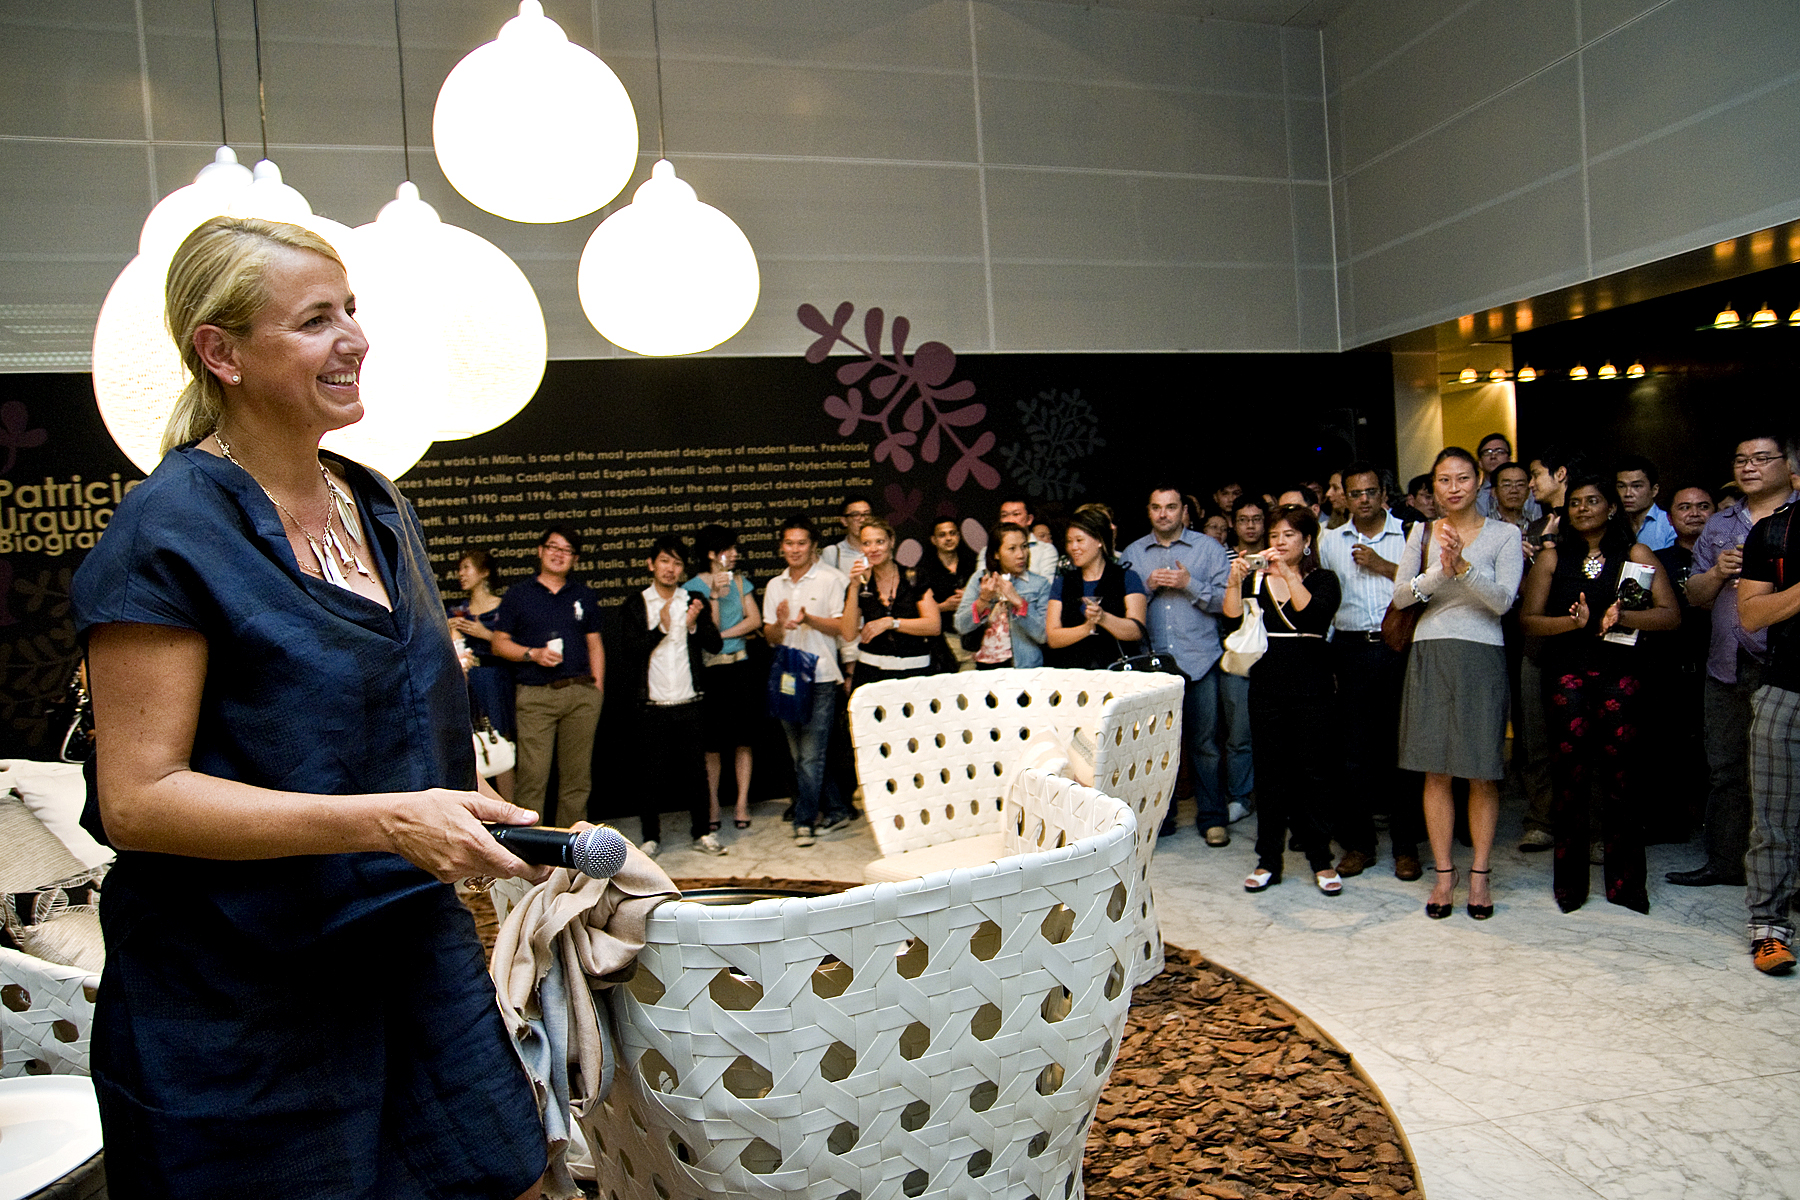 Architects, designers and the Singapore media joined designer Patricia Urquiola at the launch of her Canasta collection for B&B Italia at Space Asia Hub in 2013.